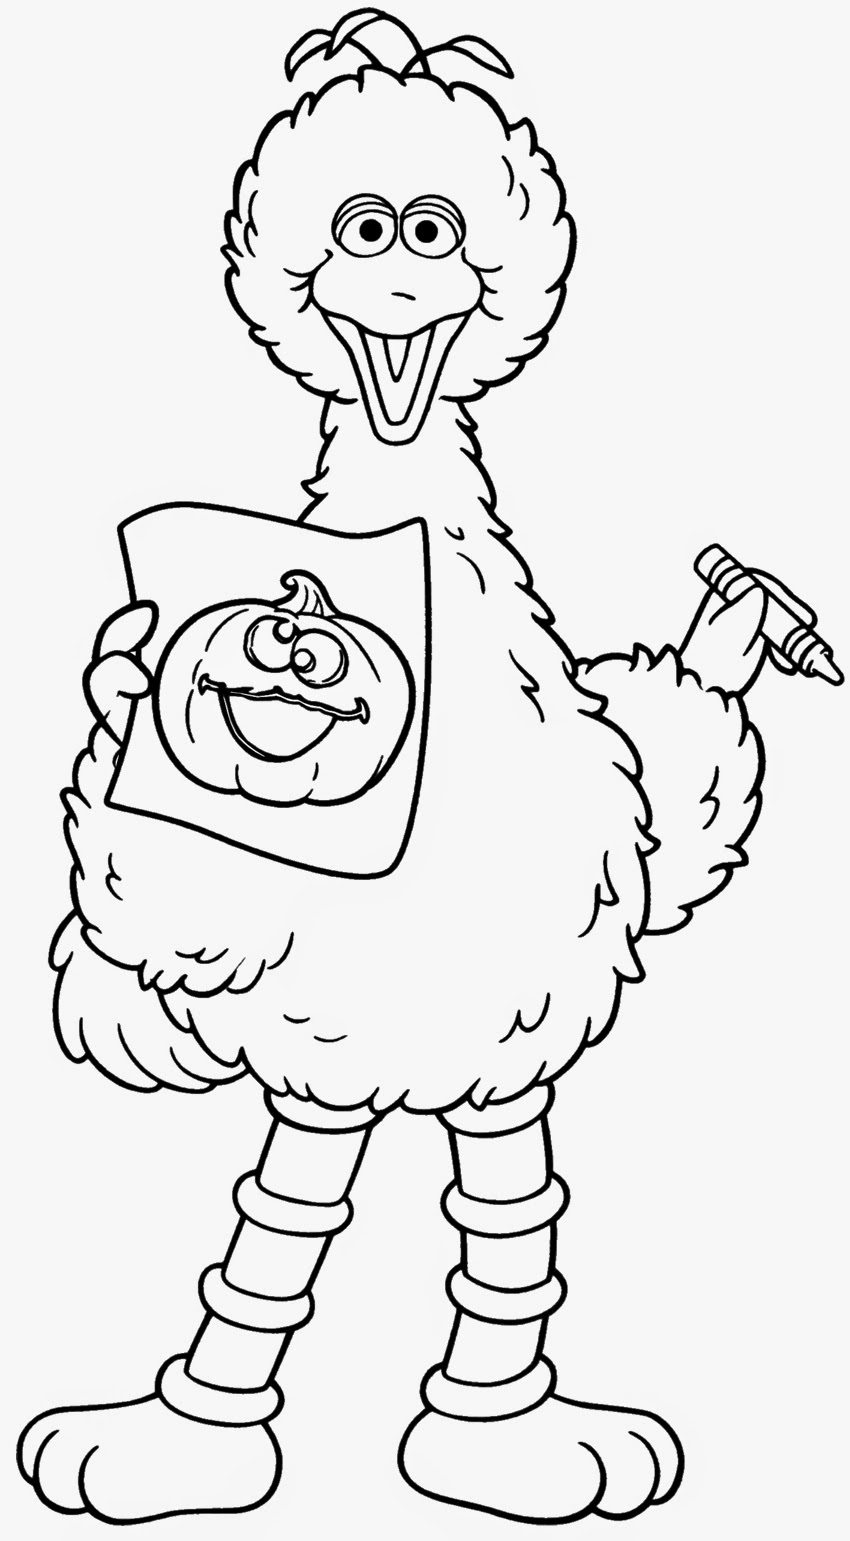 coloring pages of big bird - photo#23